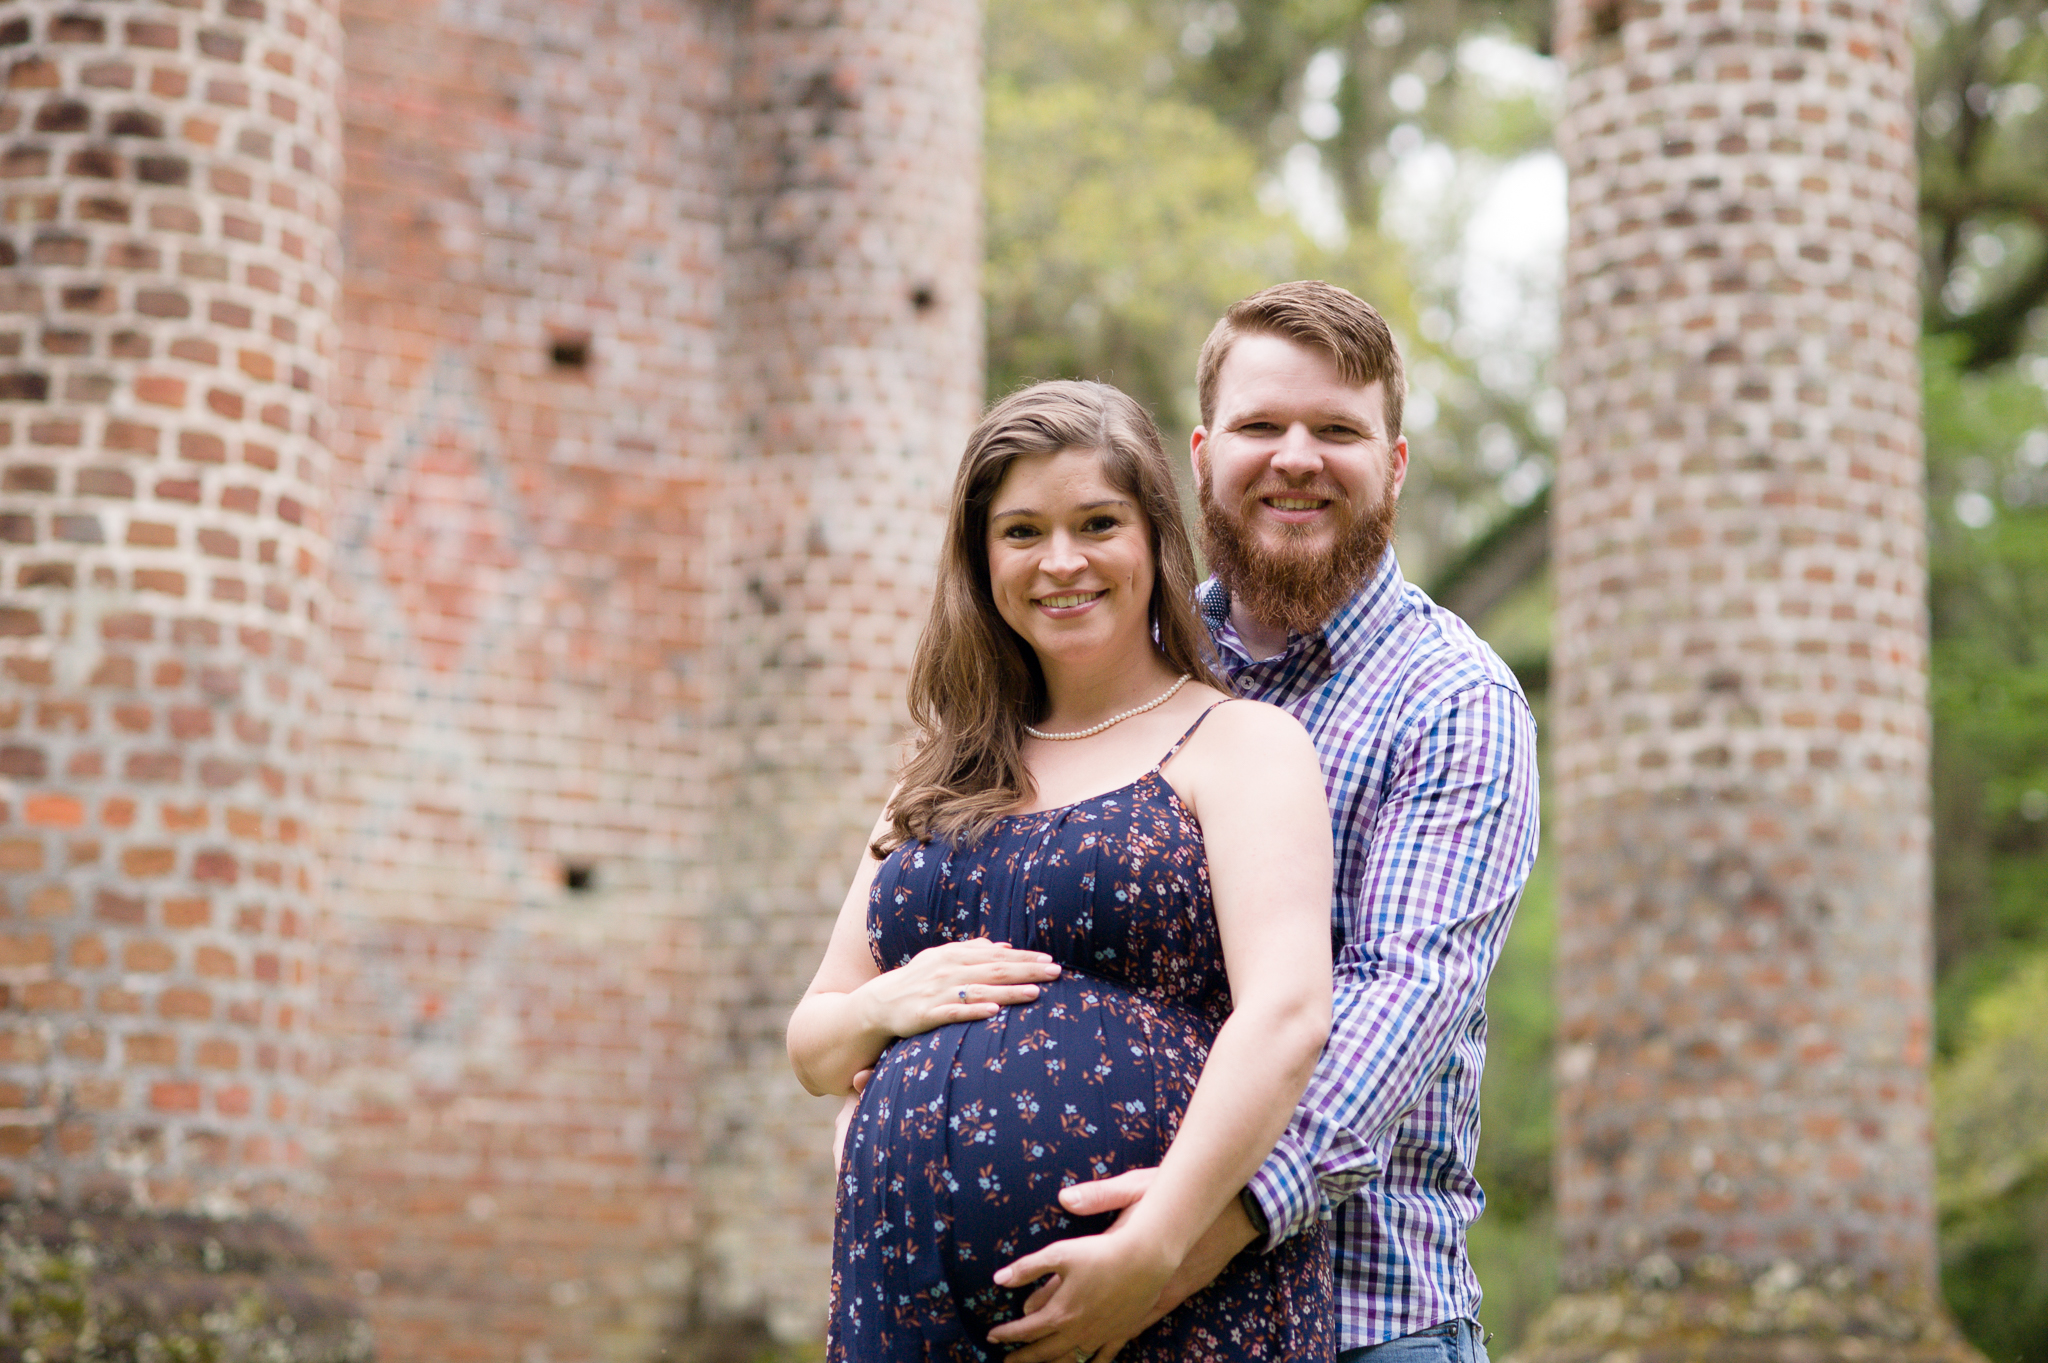 beaufort-south-carolina-maternity-portraits-2512.JPG